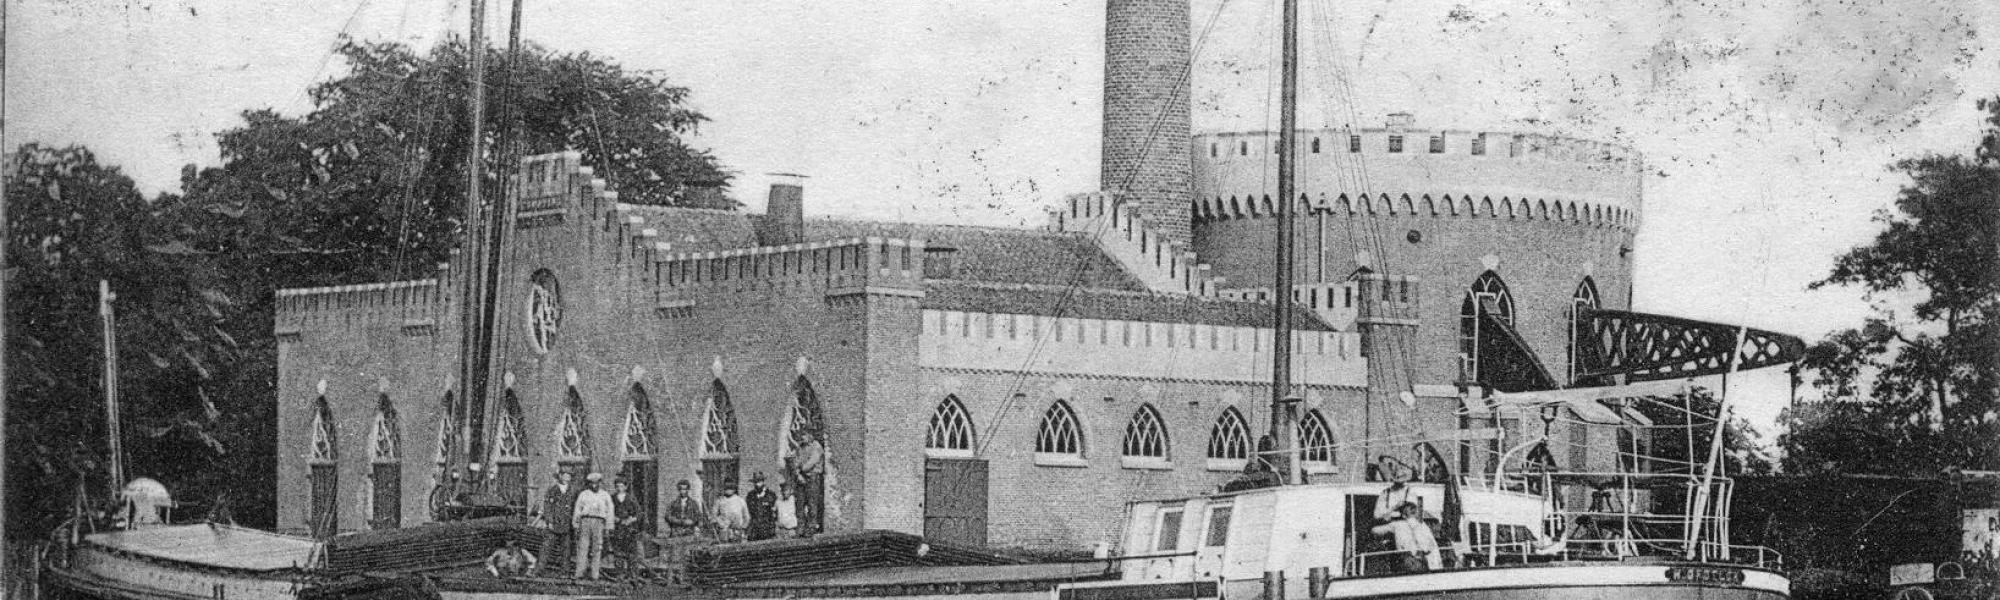 Historical image of pumping station Cruquius